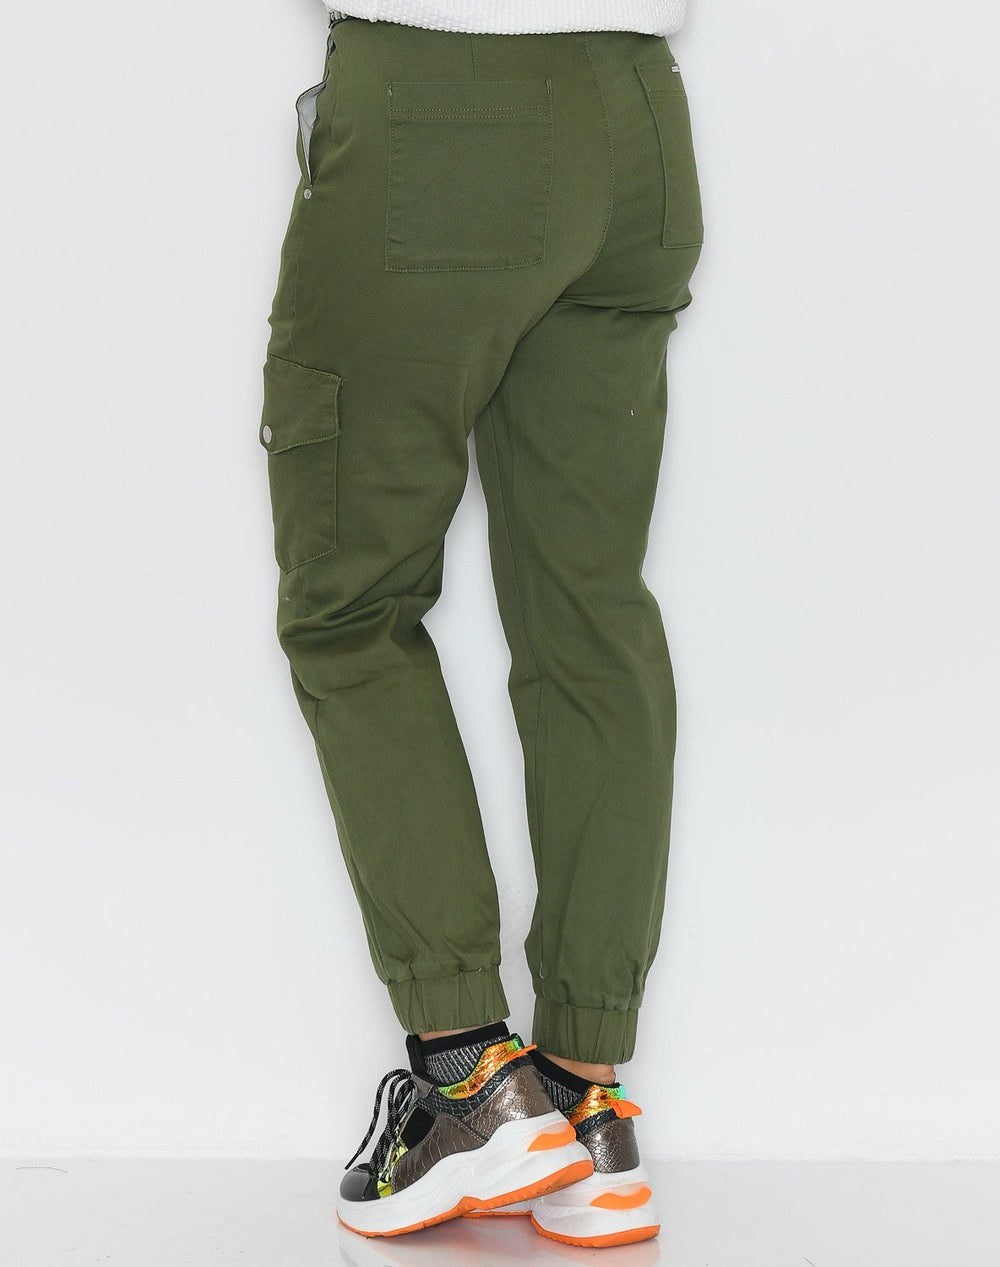 Kylie jeans green - Online-Mode